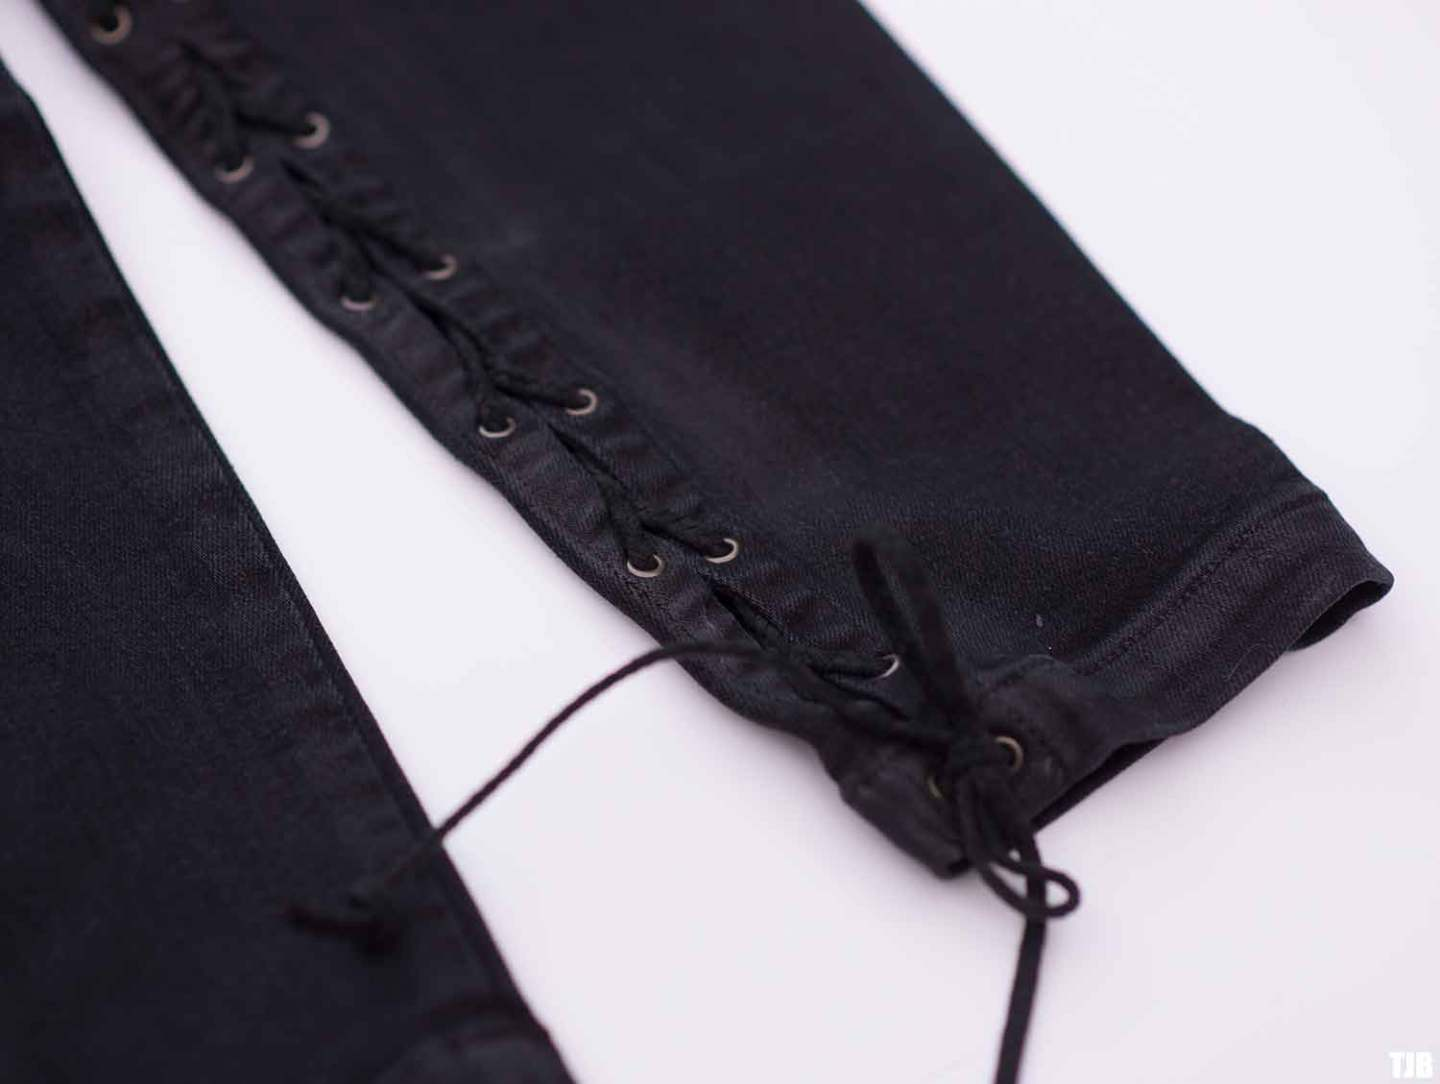 hudson-nix-skinny-lace-up-jeans-review-7